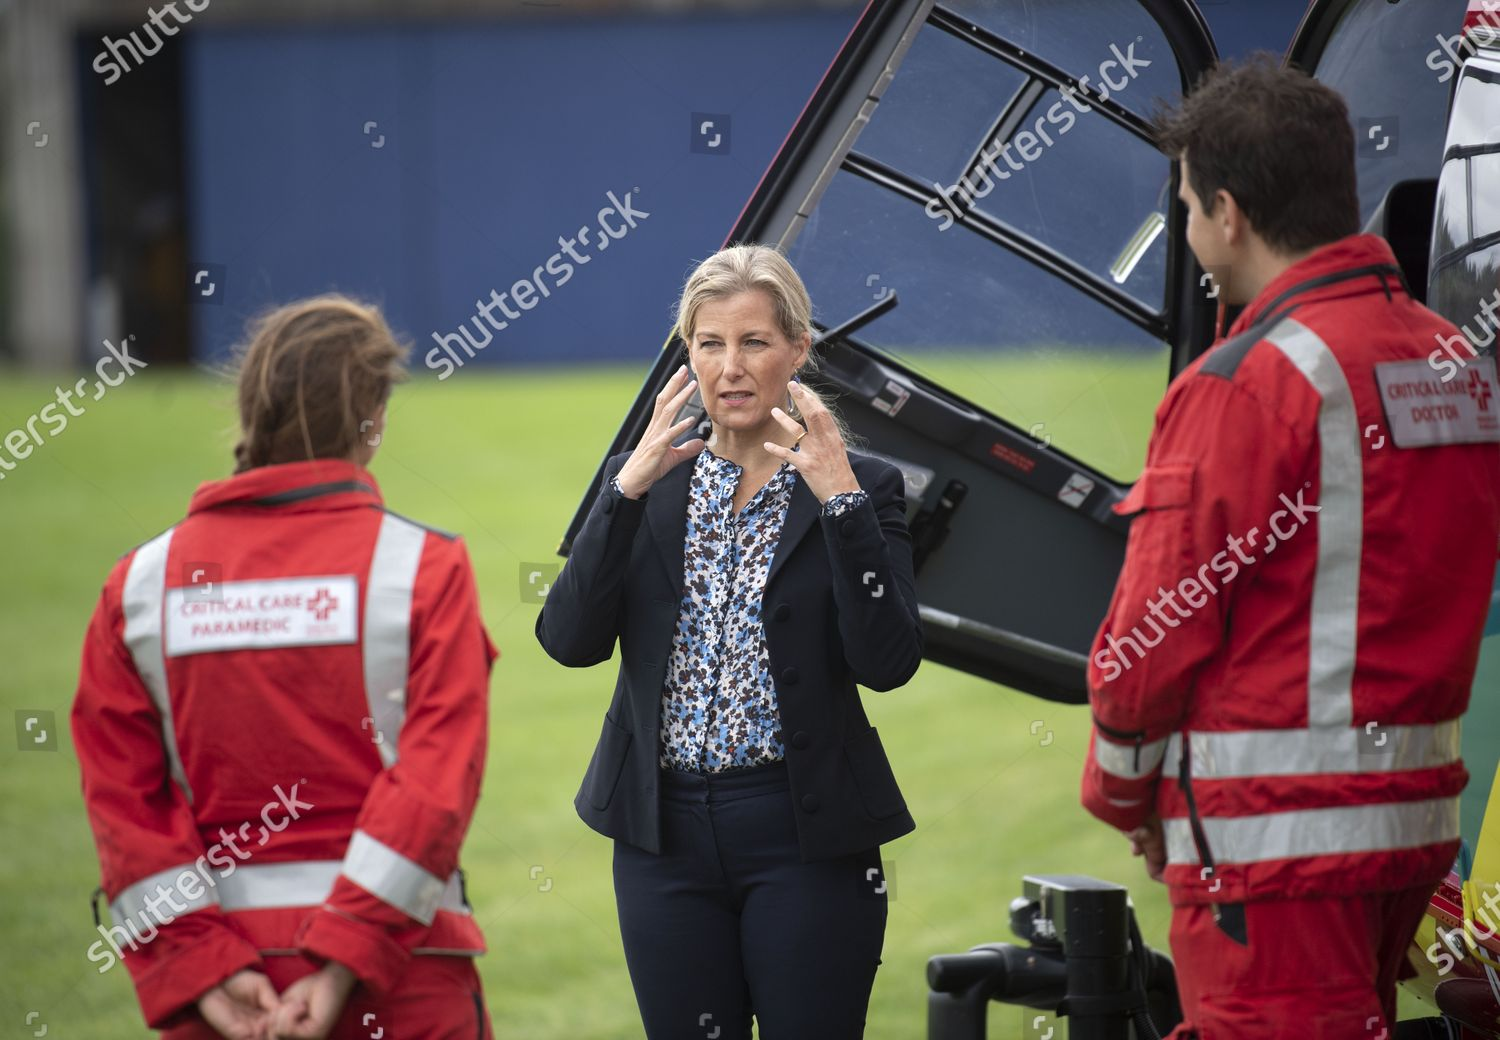 sophie-countess-of-wessex-visit-to-thames-valley-air-ambulance-white-waltham-airfield-maidenhead-uk-shutterstock-editorial-10764568o.jpg